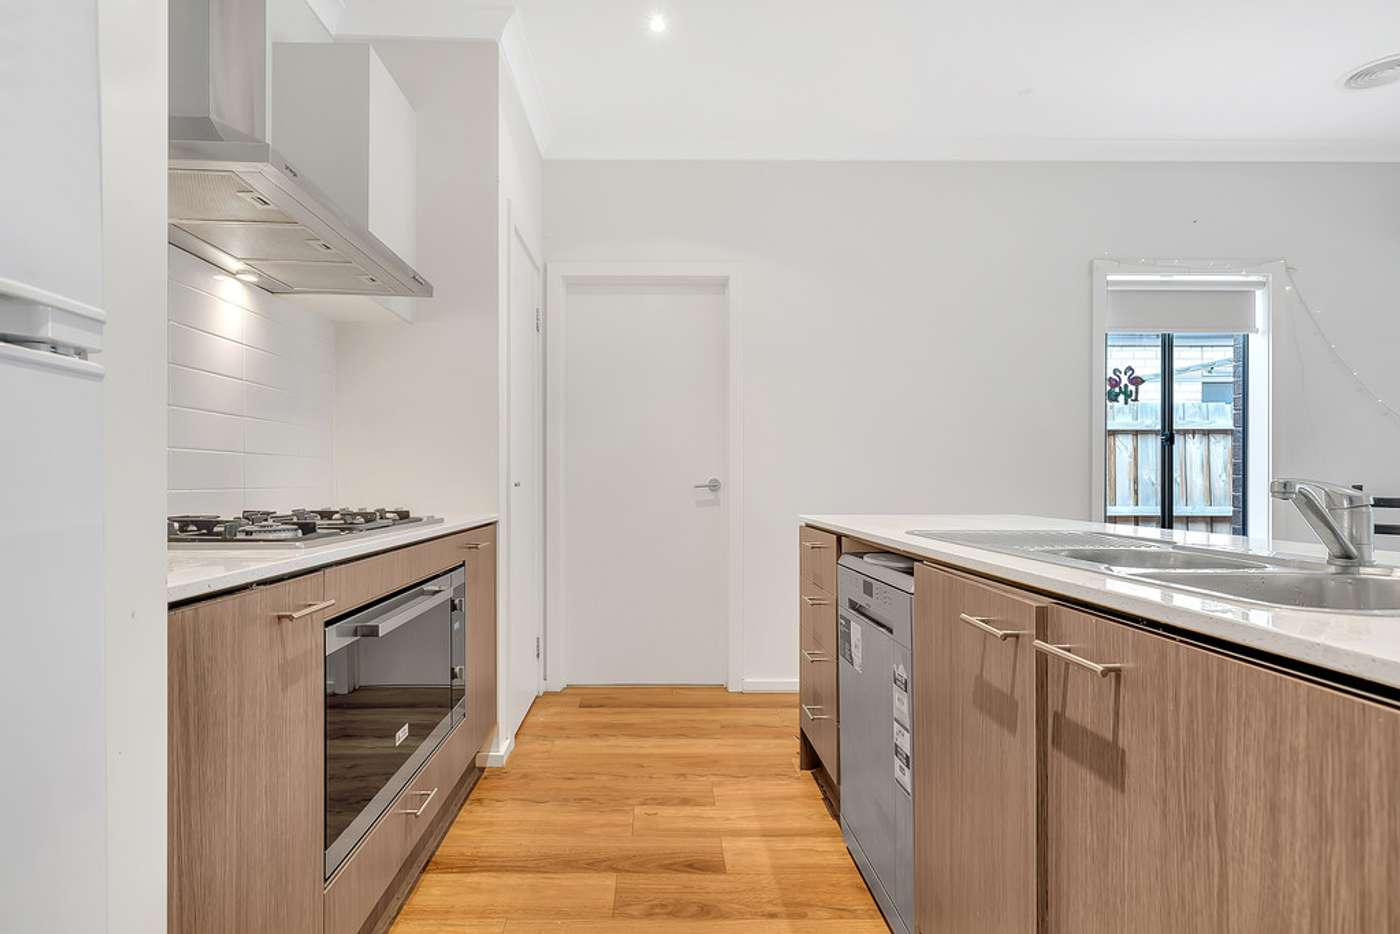 Seventh view of Homely house listing, 58 Carrick Street, Point Cook VIC 3030